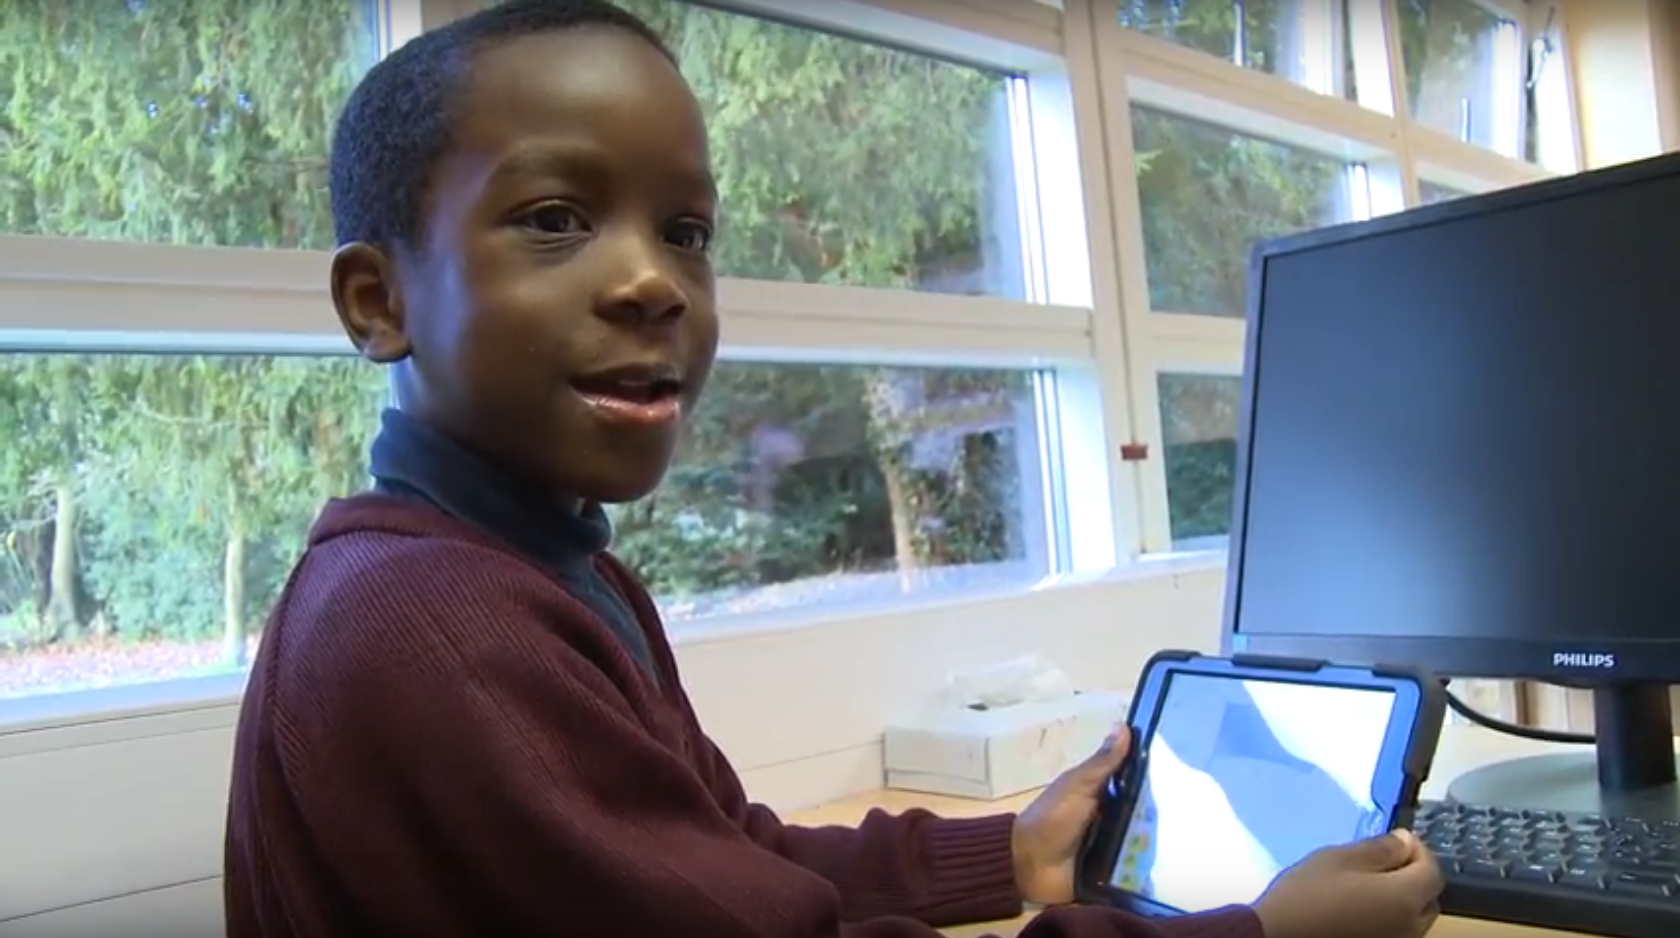 Why Children Love Switched On Computing